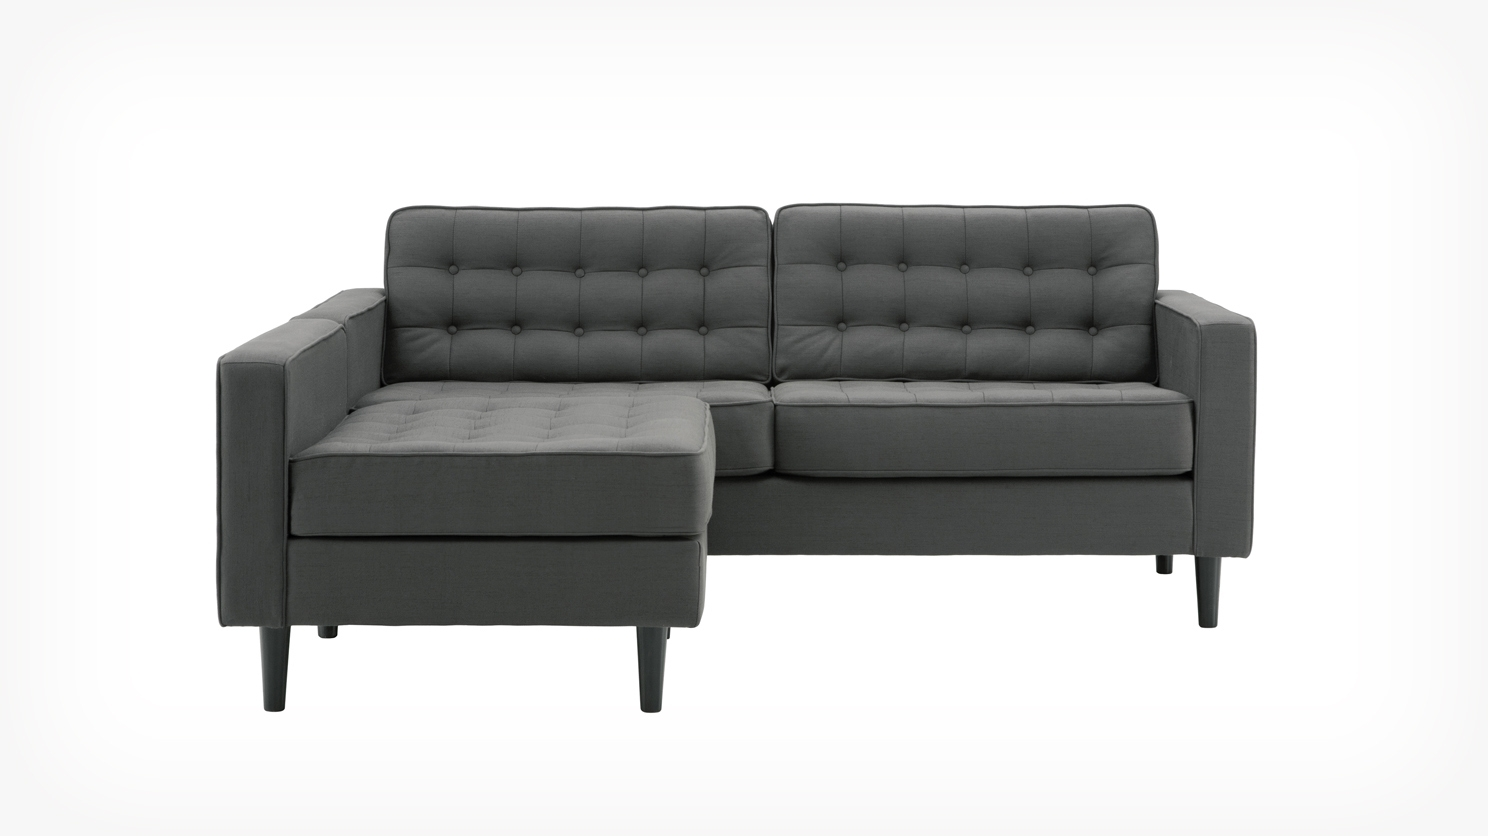 Most Popular Apartment Sectional Sofas With Chaise Intended For Eq (View 3 of 20)